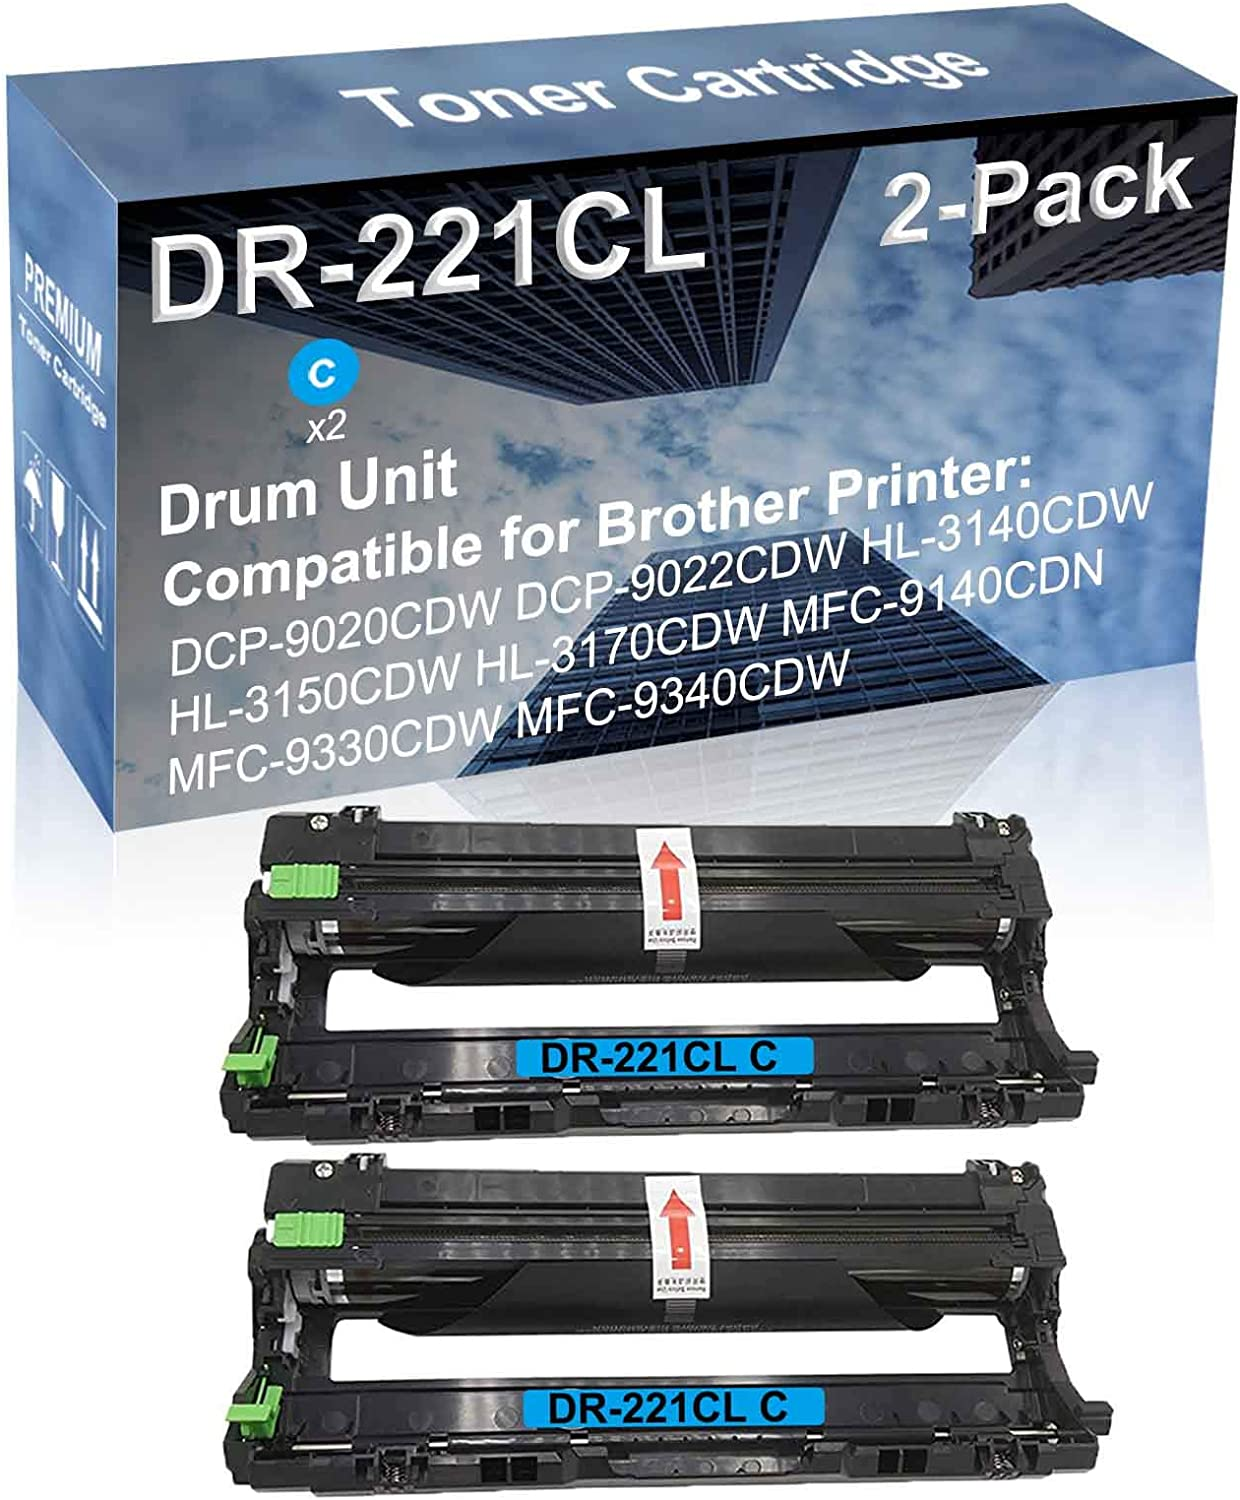 2-Pack Cyan Compatible High Yield U Award-winning store DR221 DR-221CL Unit Drum Bombing new work